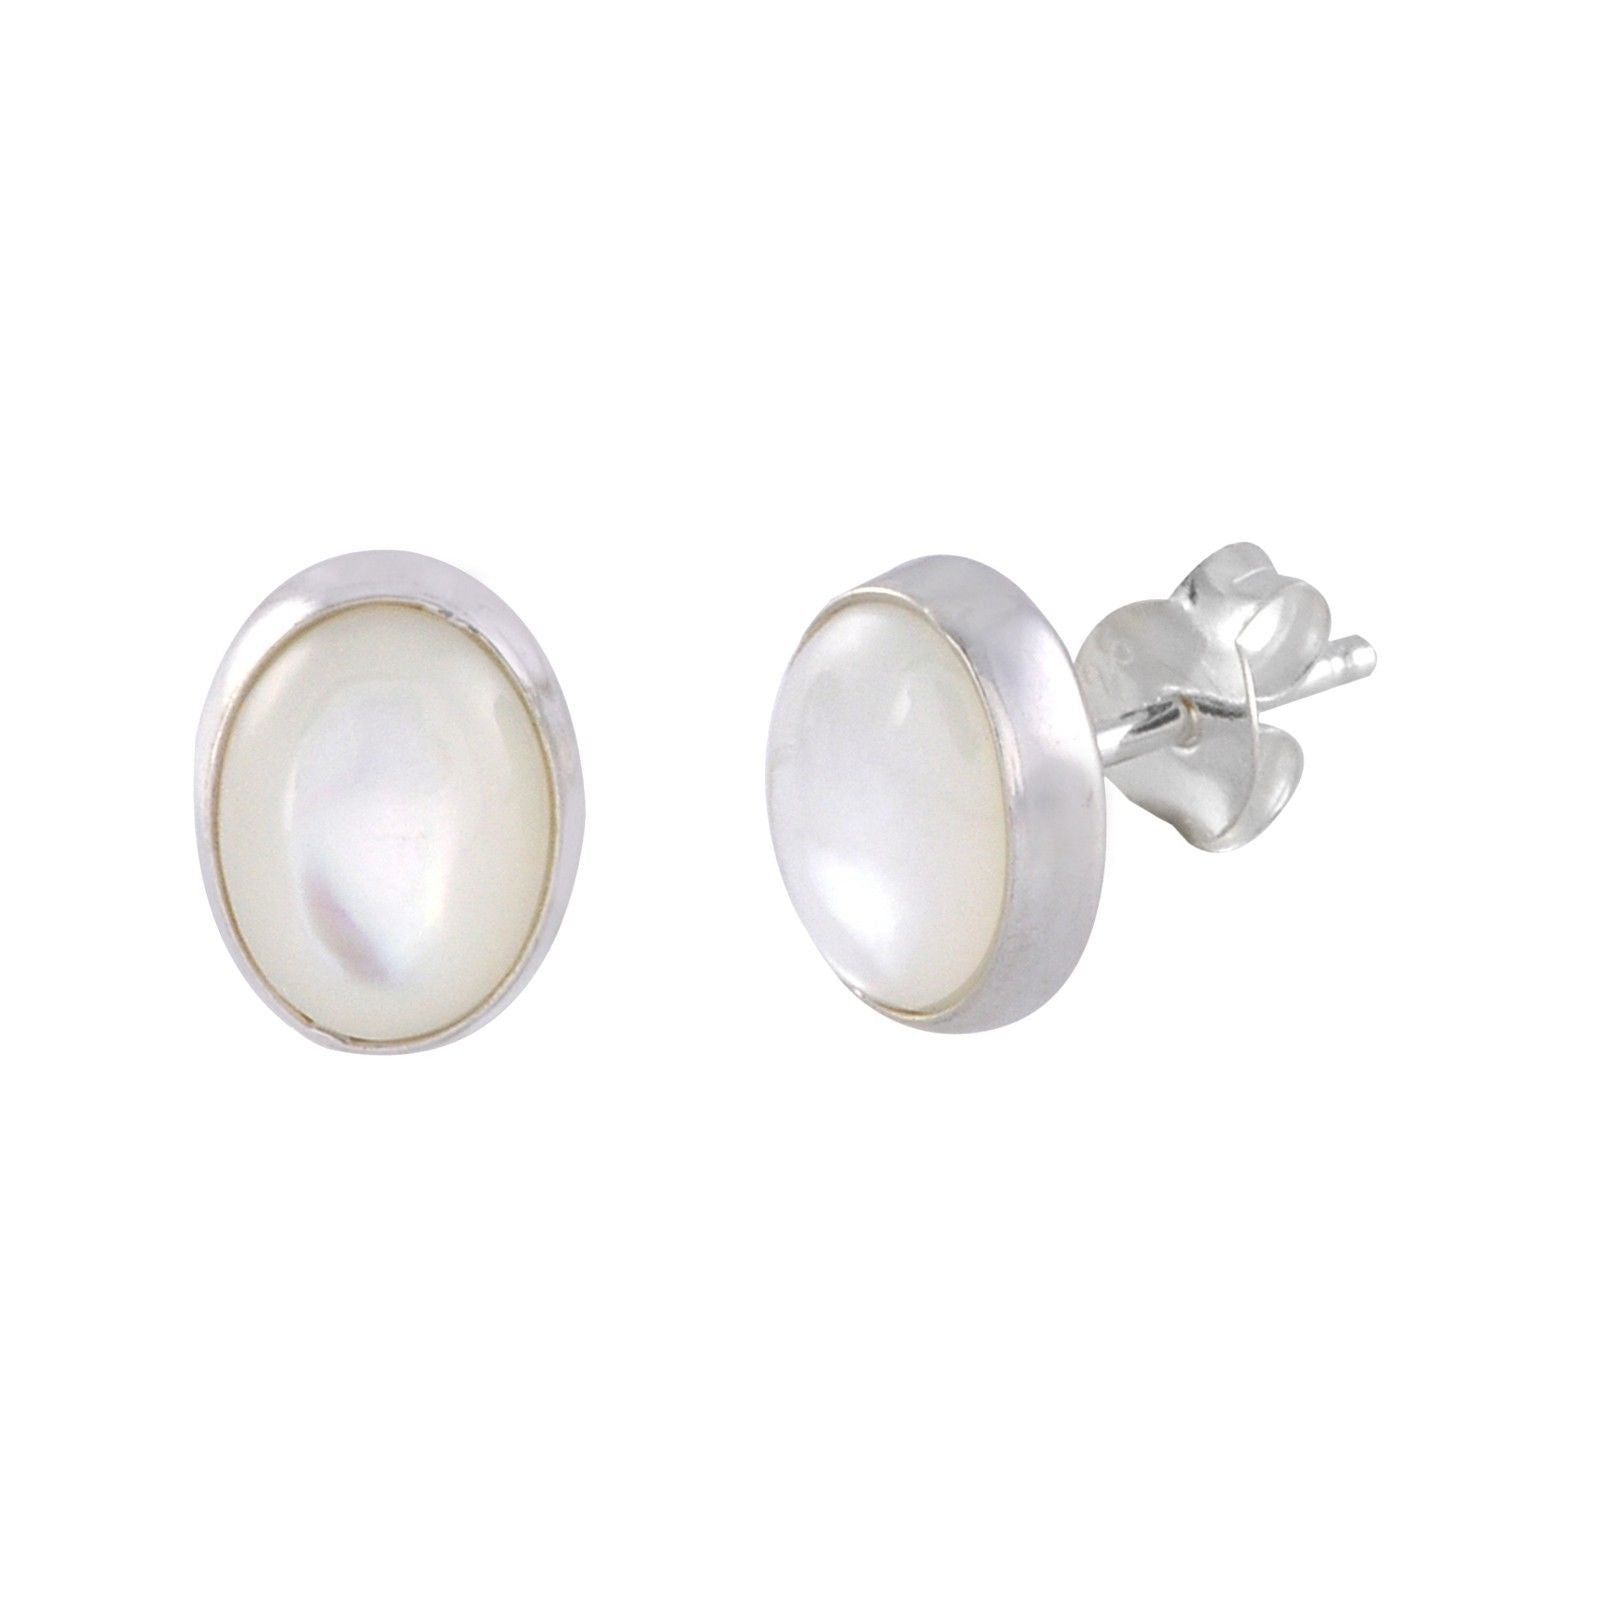 Mother Of Pearl Gemstone Stud Earrings 925 Sterling Silver Oval 7mm X 9mm